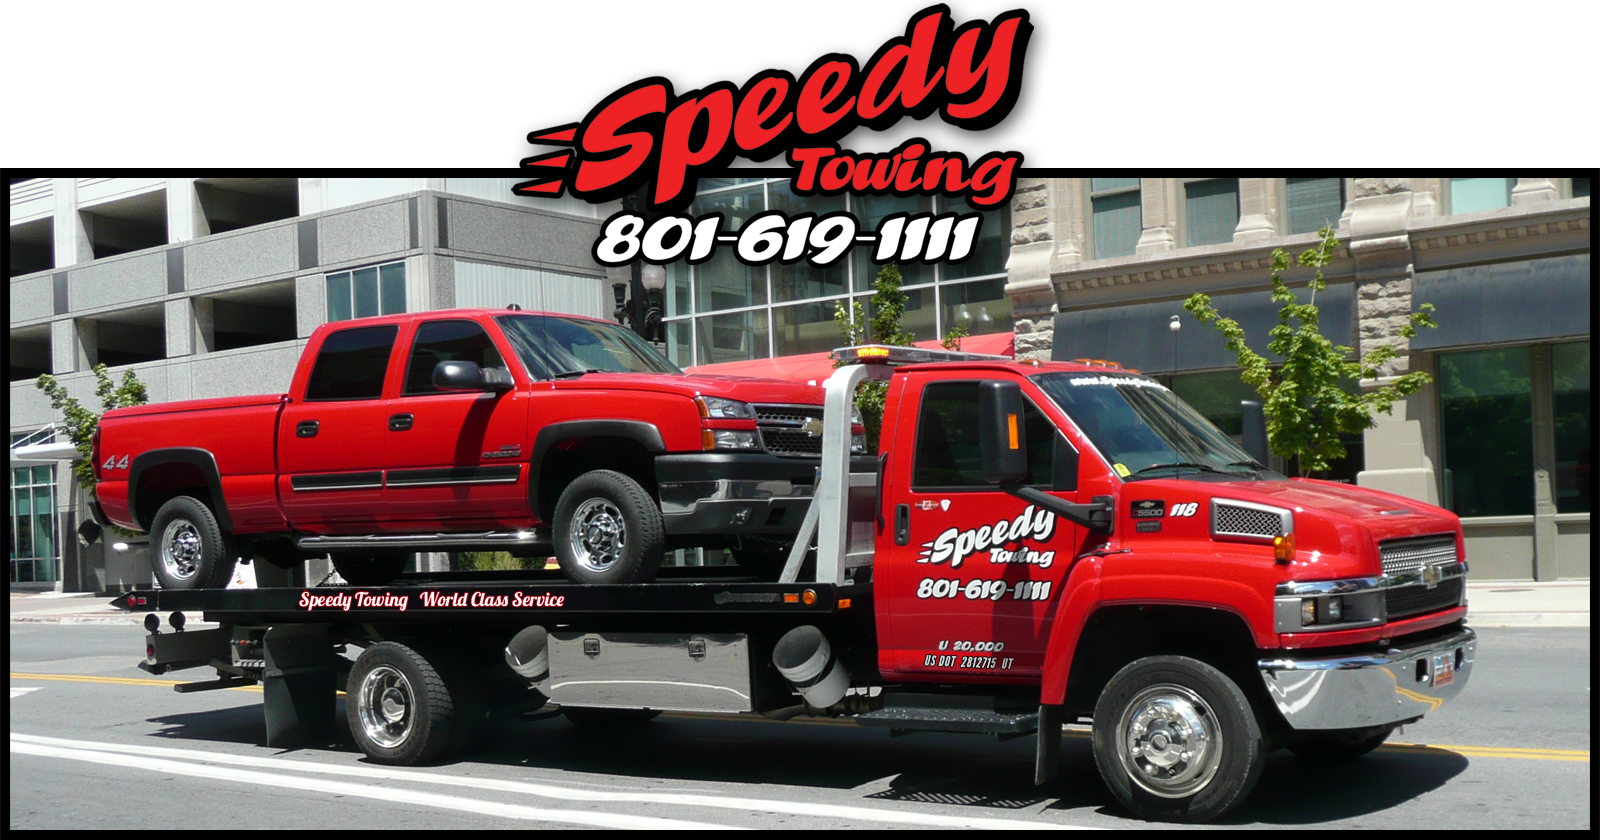 Salt Lake Towing Company